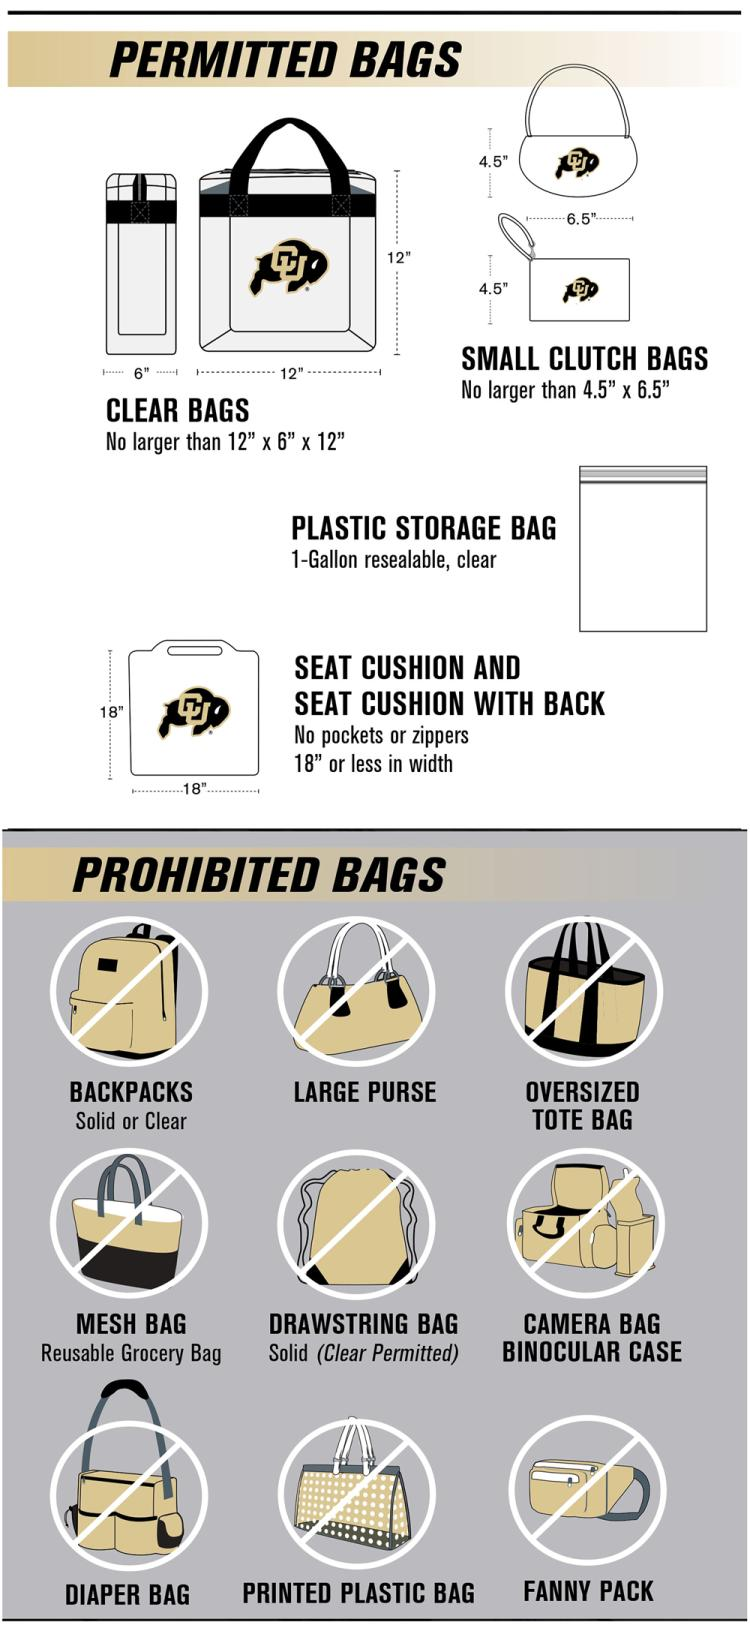 Allowed Items at Folsom Field